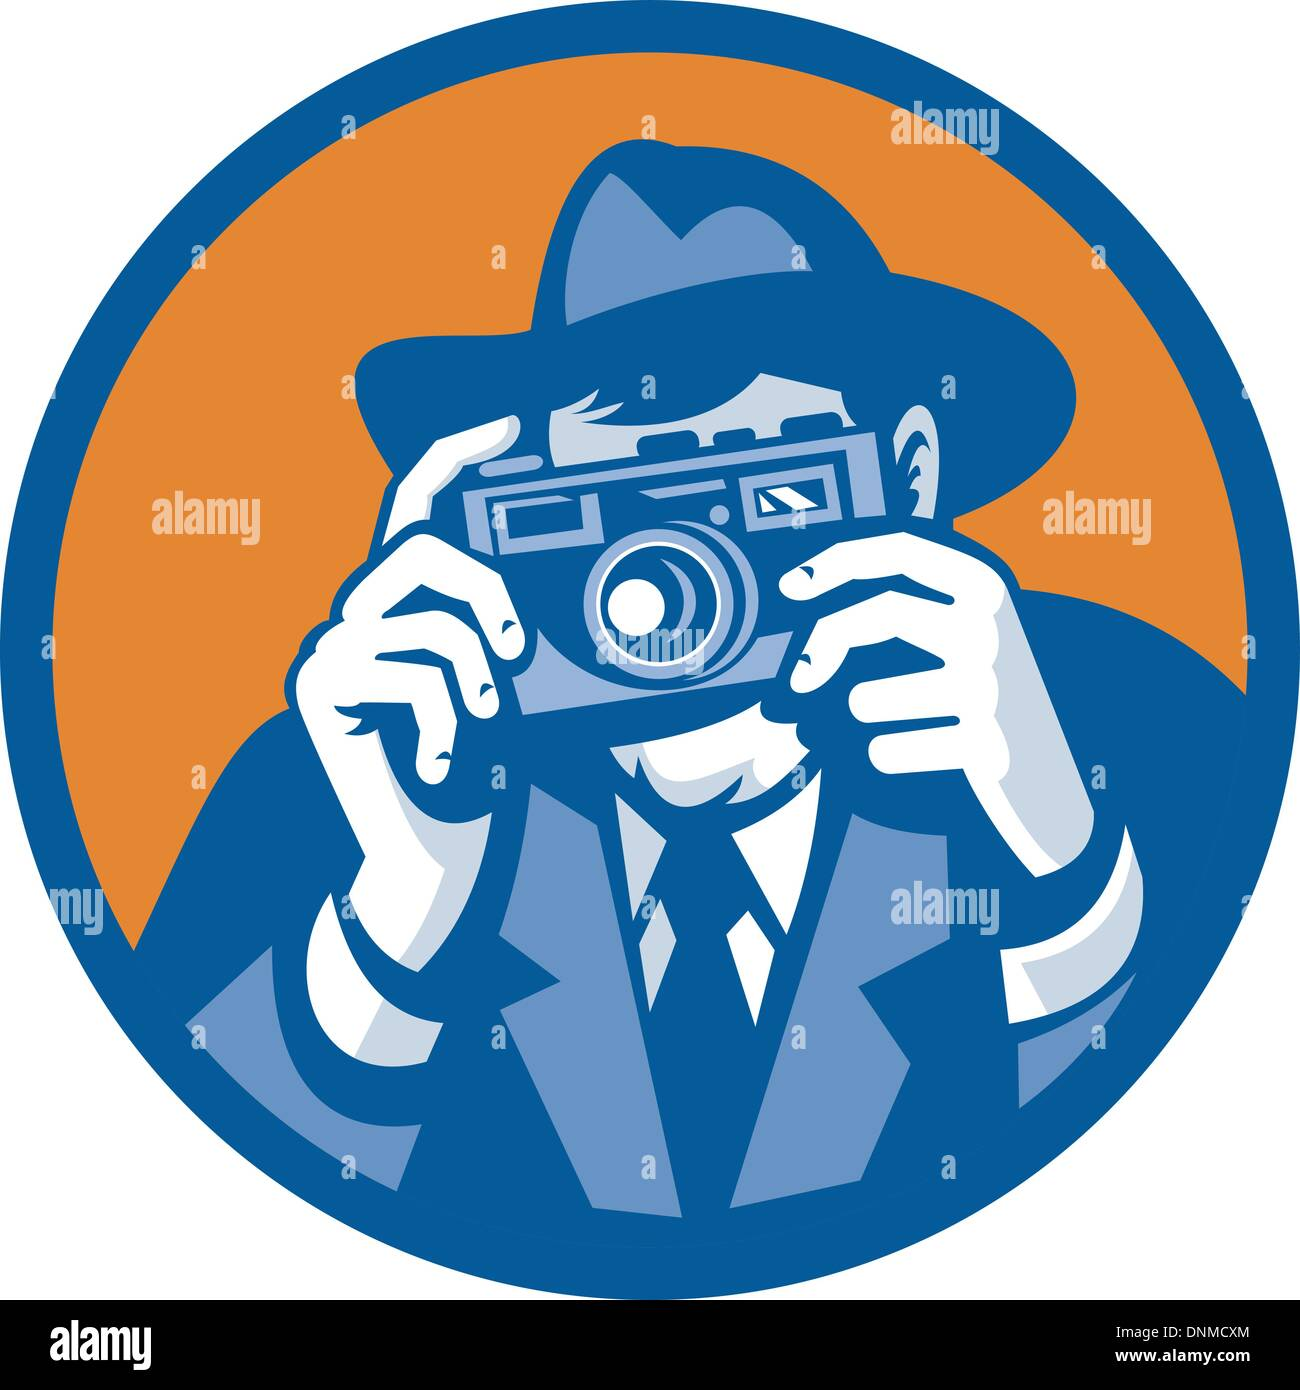 illustration of a Photographer with fedora hat aiming retro slr camera done in retro style - Stock Vector